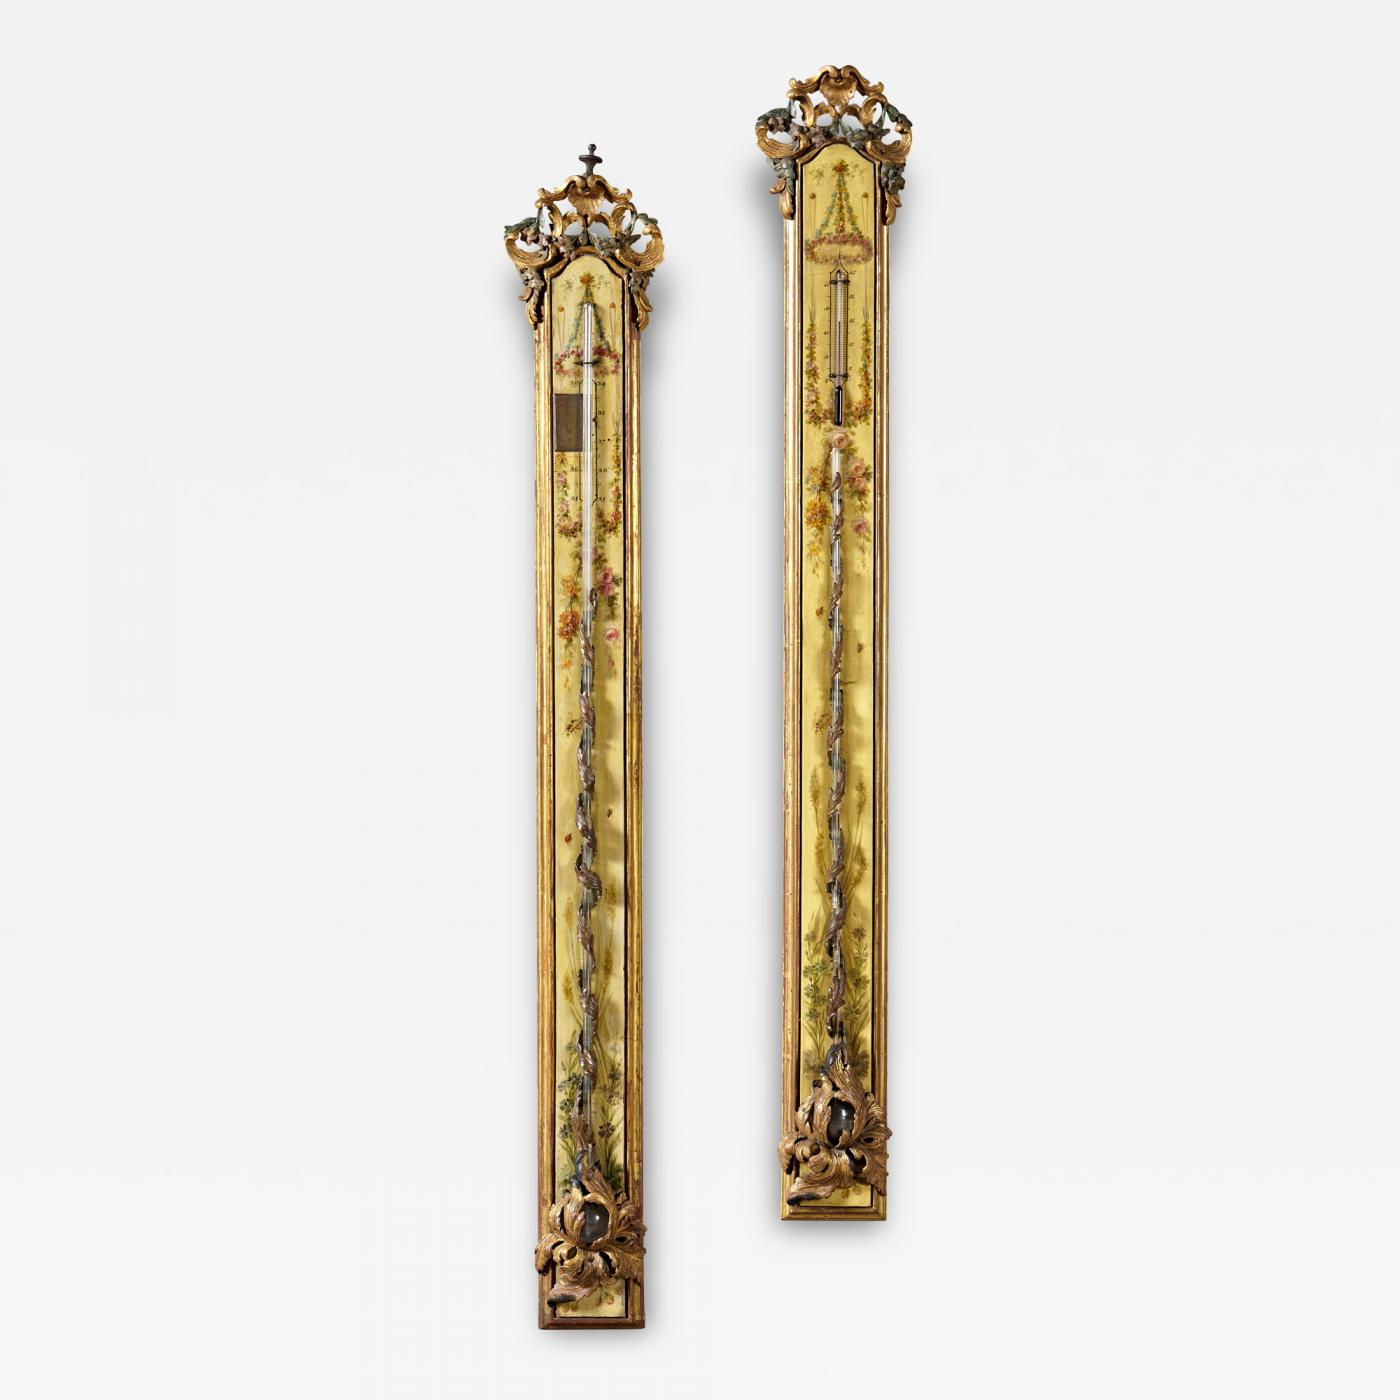 Image result for images of french barometers